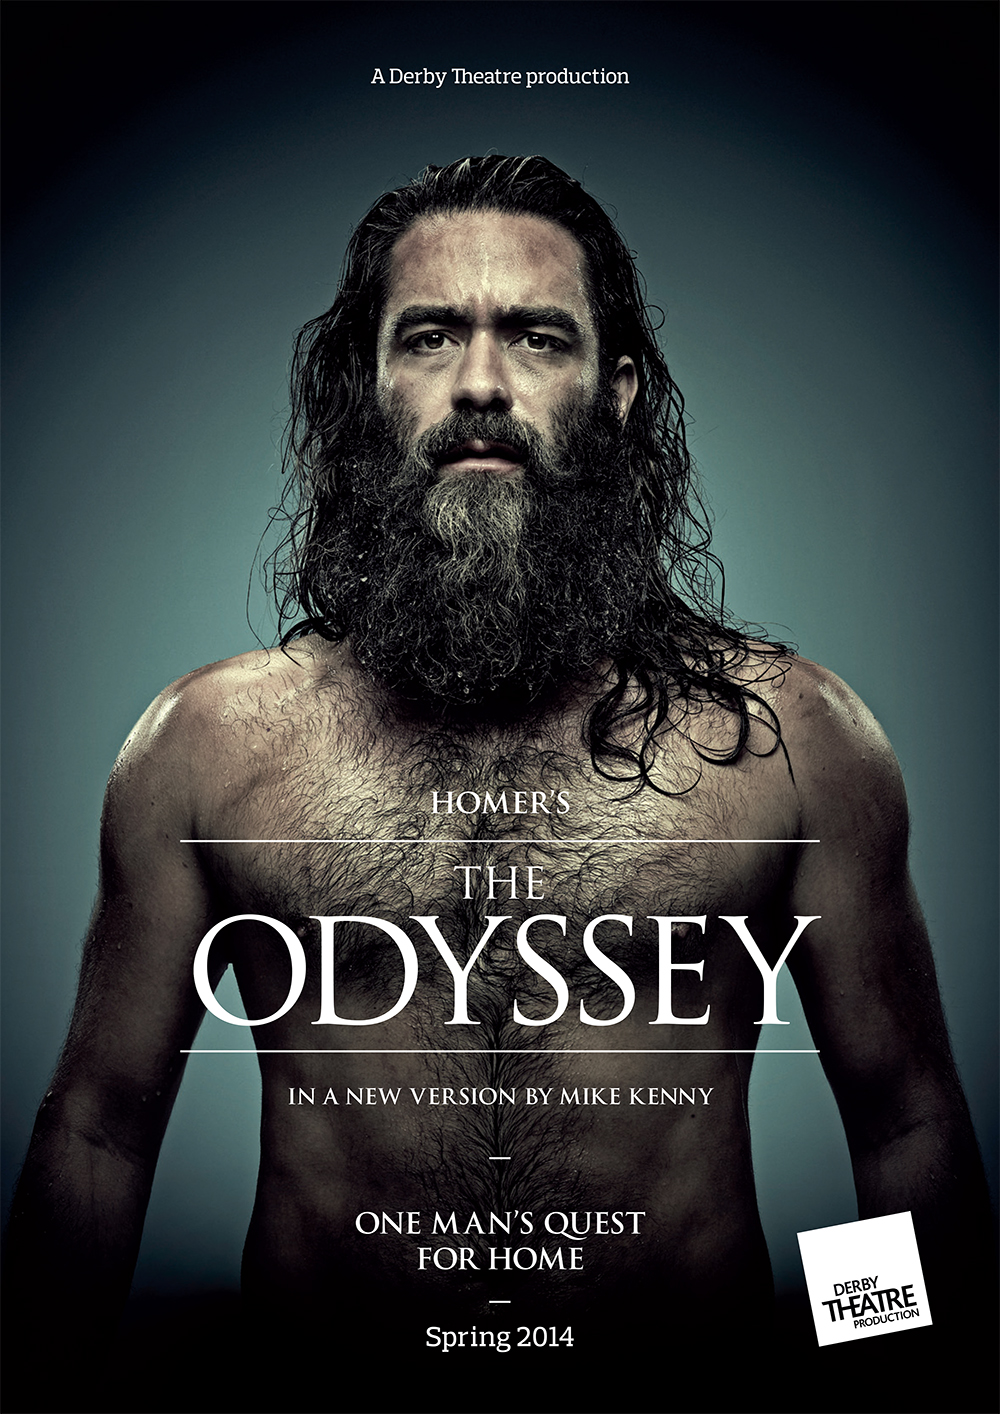 odysseus movie review Movies & tv new releases best sellers deals blu-ray 4k ultra hd tv shows kids & family anime all genres prime video your video library search results 1-16 of 39 results for movies & tv .